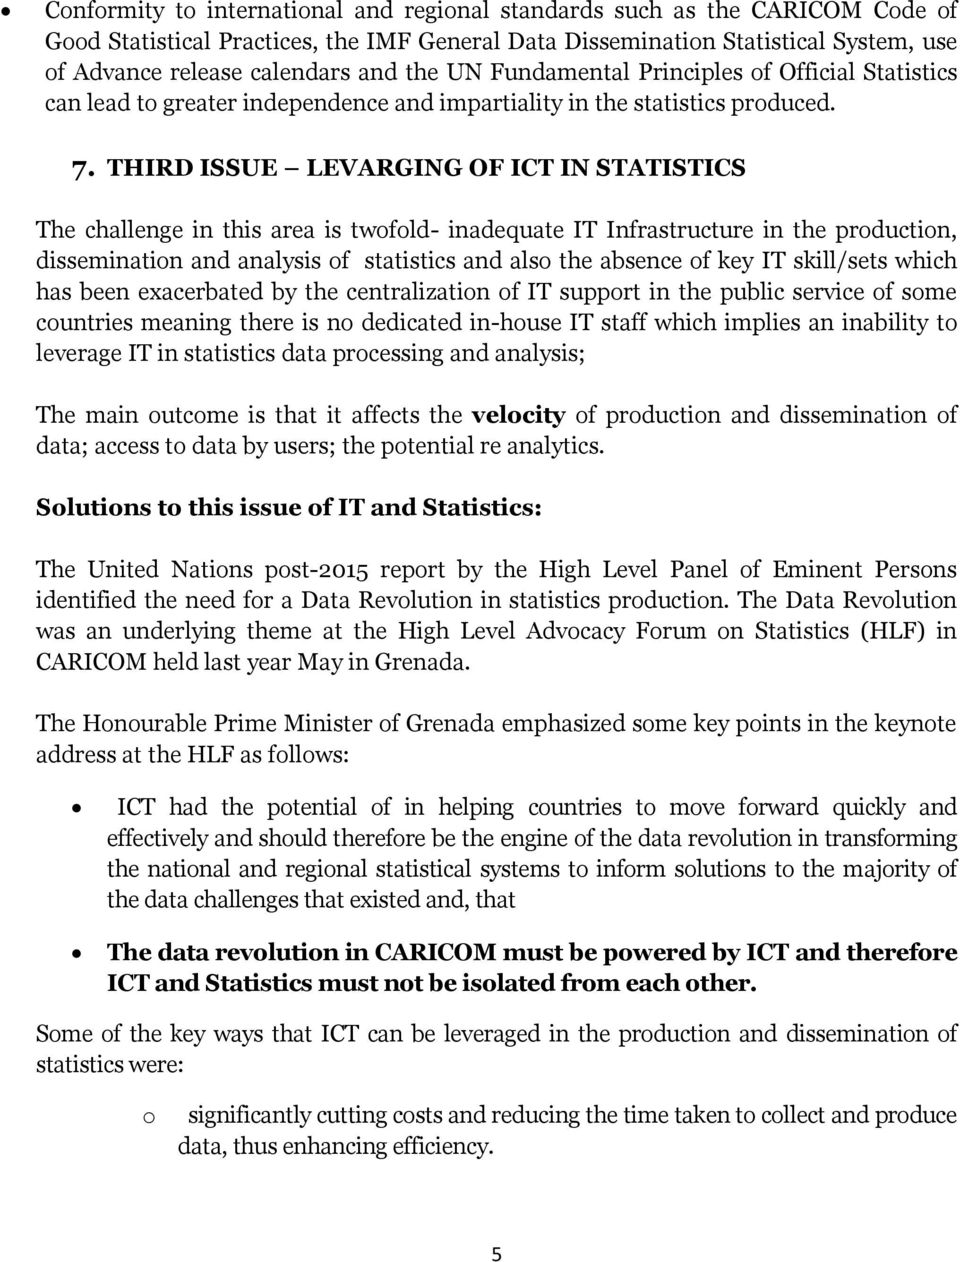 THIRD ISSUE LEVARGING OF ICT IN STATISTICS The challenge in this area is twofold- inadequate IT Infrastructure in the production, dissemination and analysis of statistics and also the absence of key